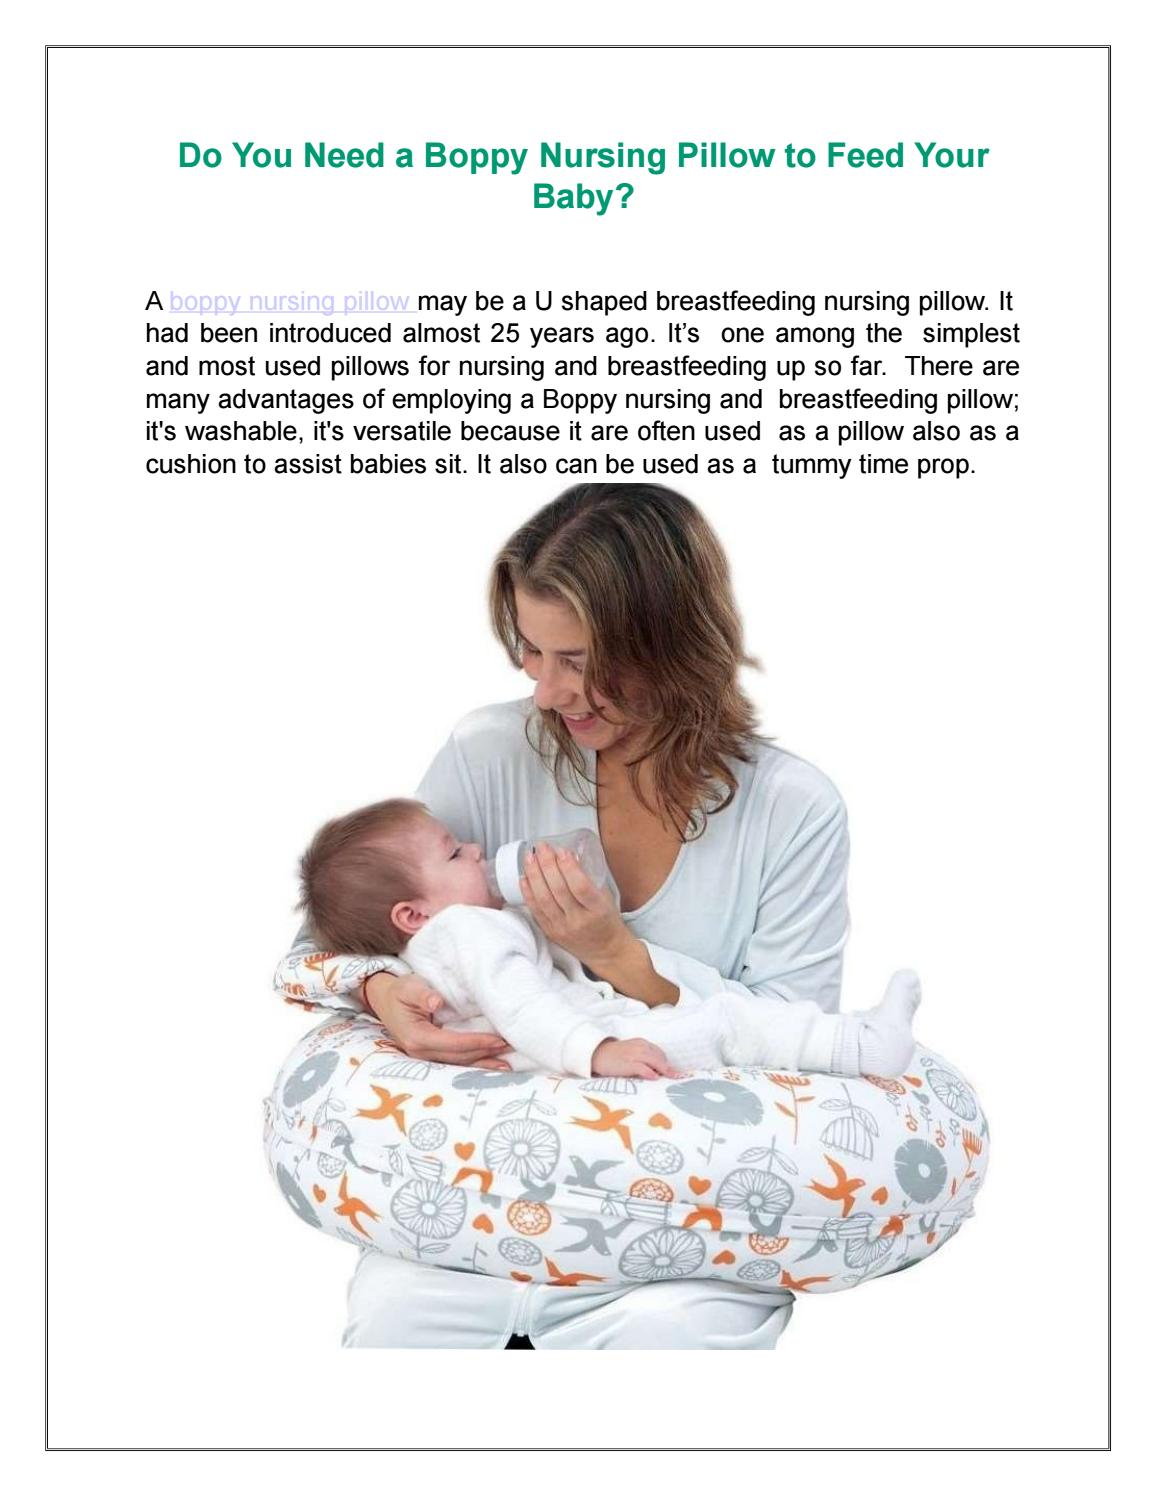 boppy nursing pillow to feed your baby